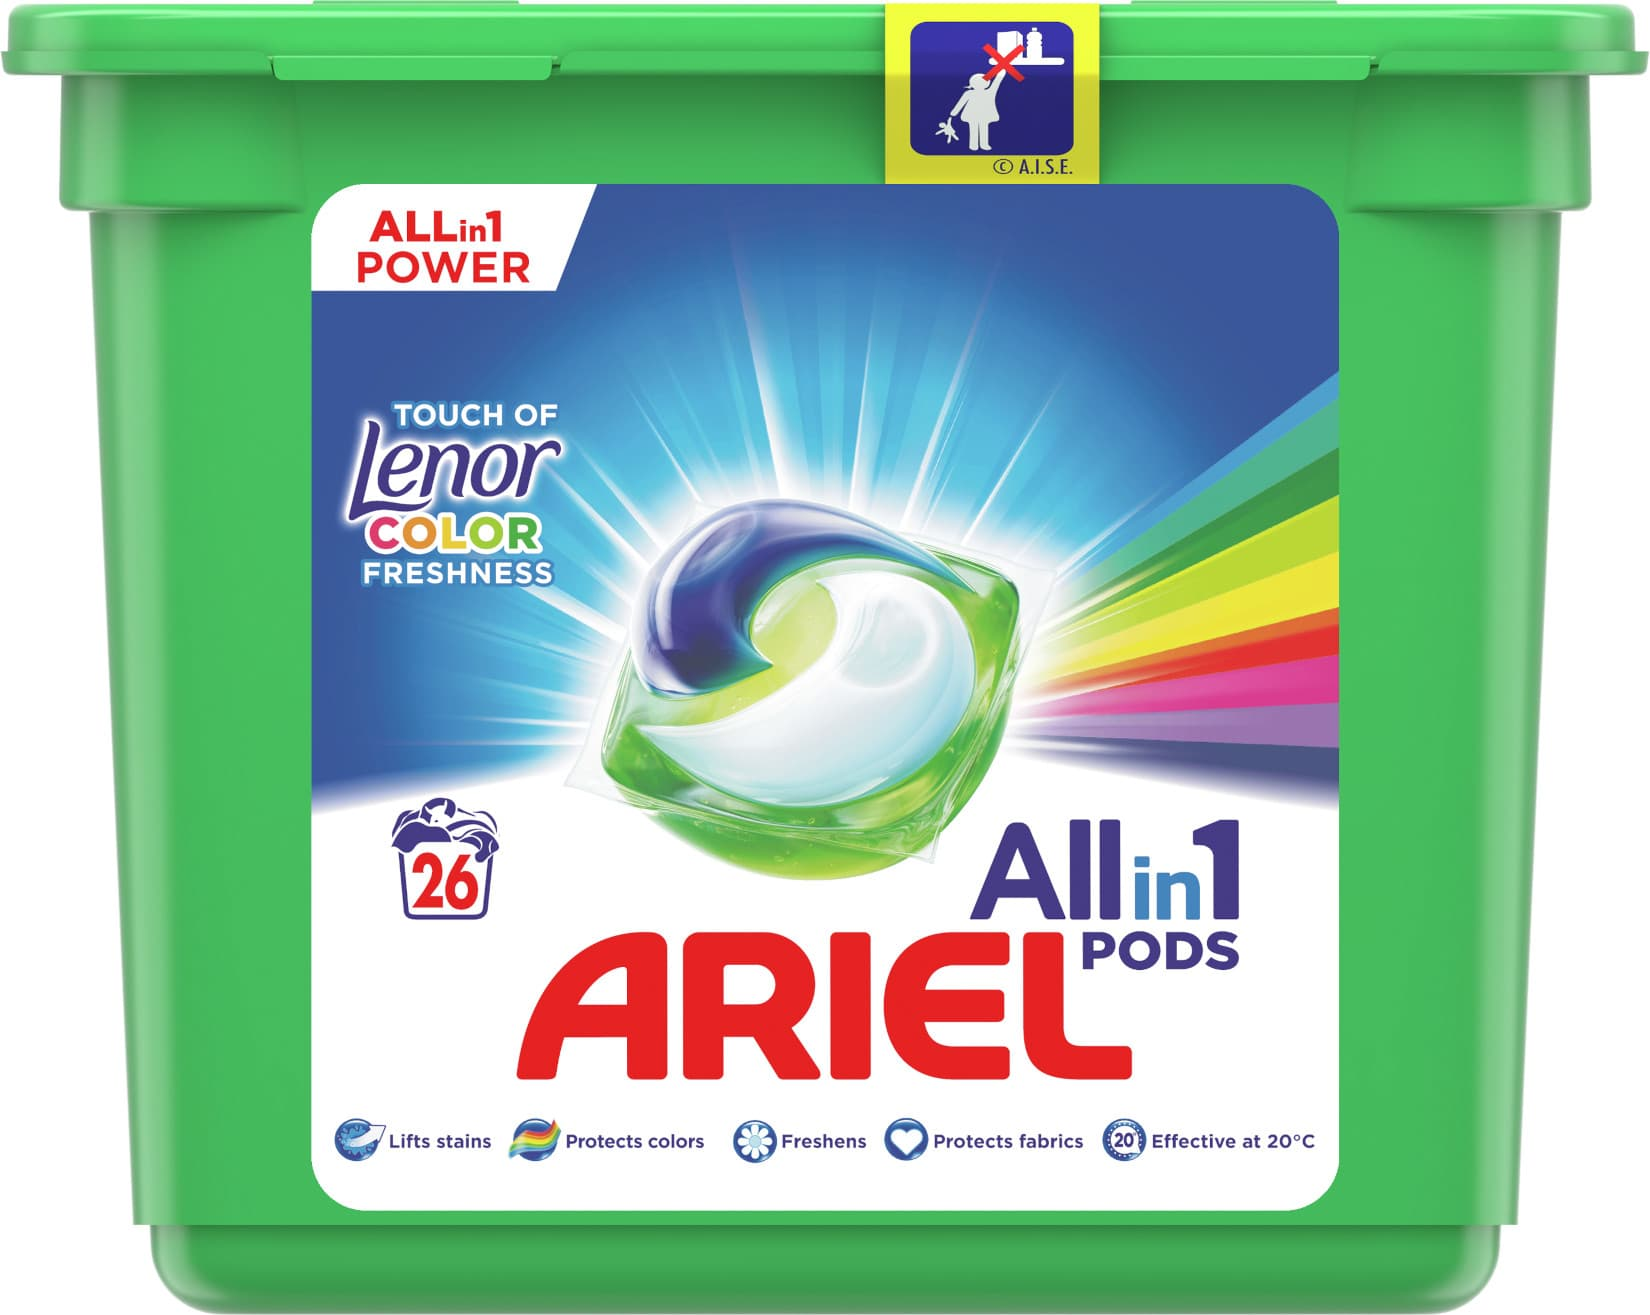 Ariel All-in-1 Color, Touch of Lenor, Gelové tablety 26ks